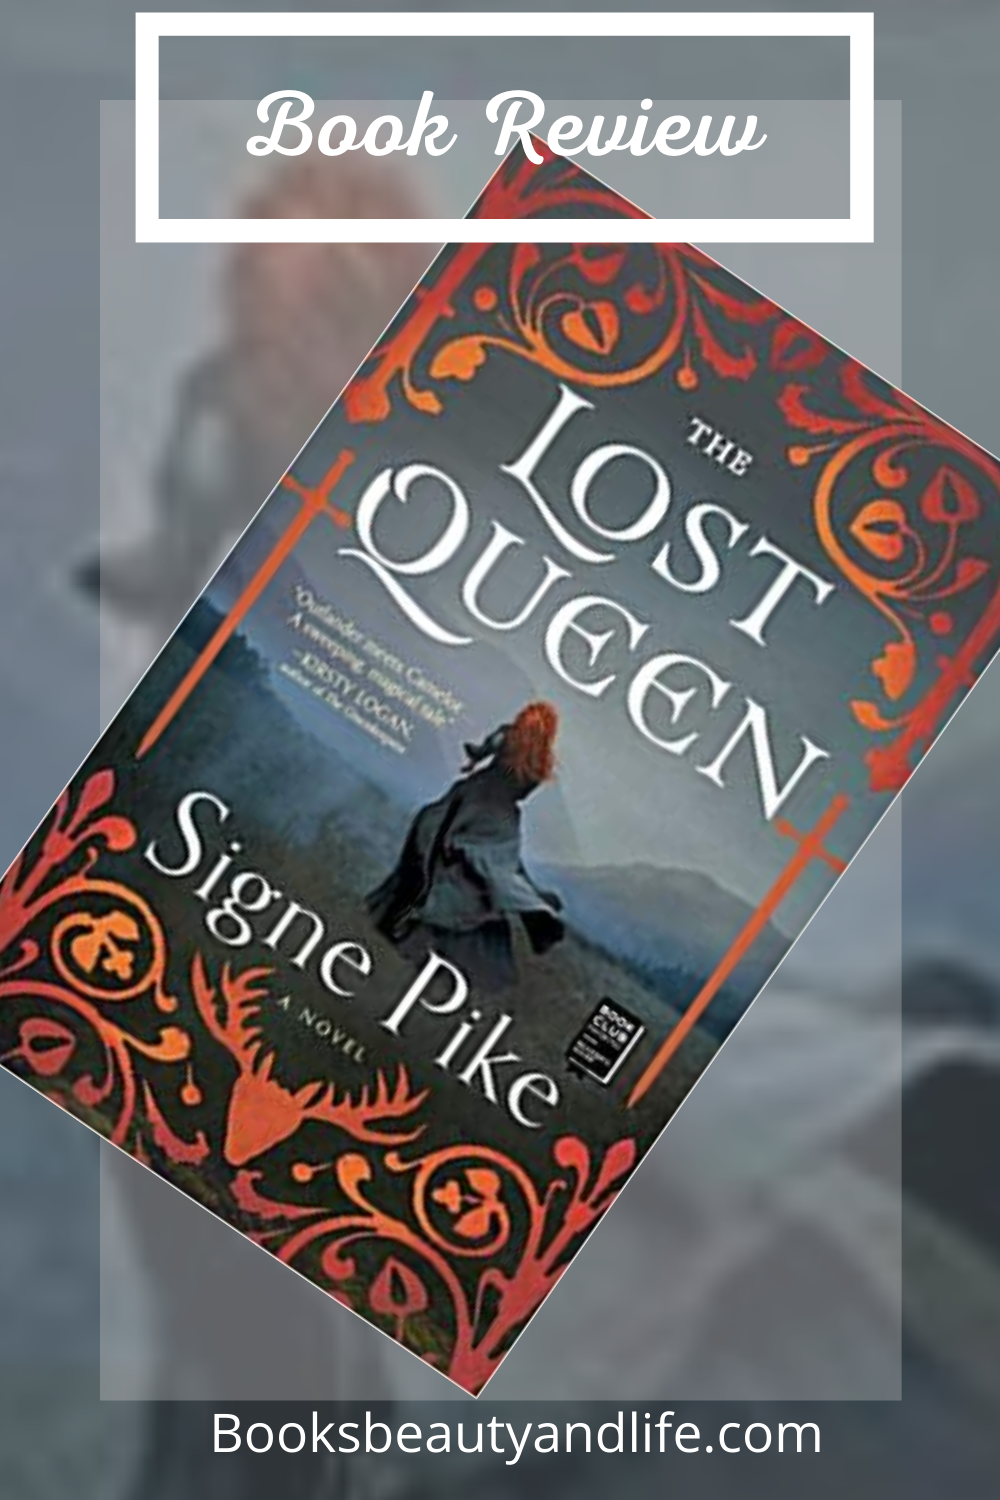 The Lost Queen by Signe Pike